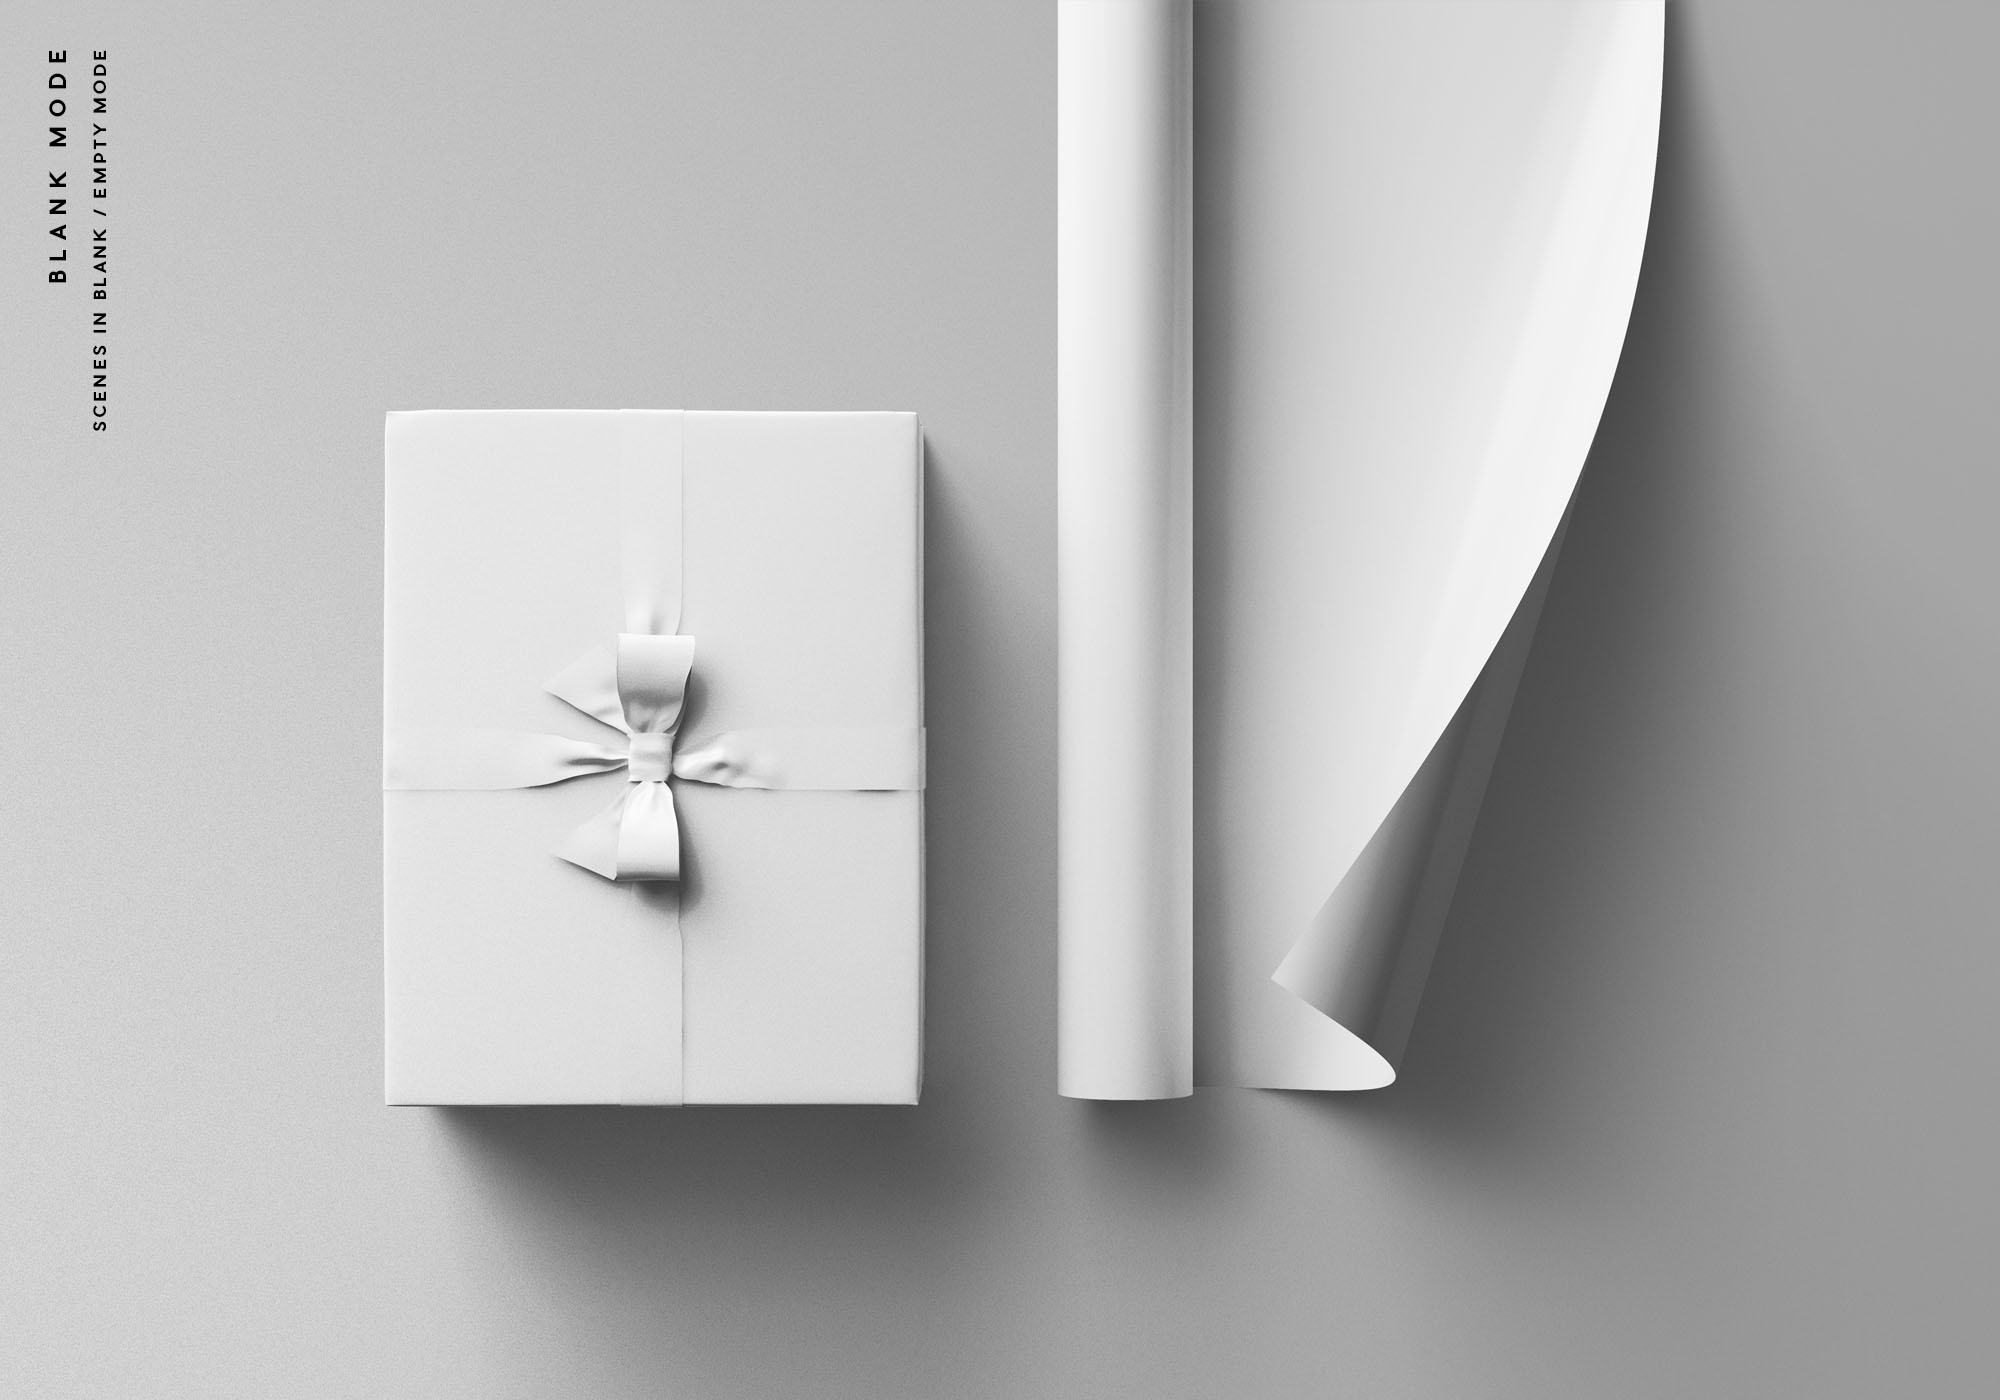 Wrapping Paper Mockup - Blank Mode